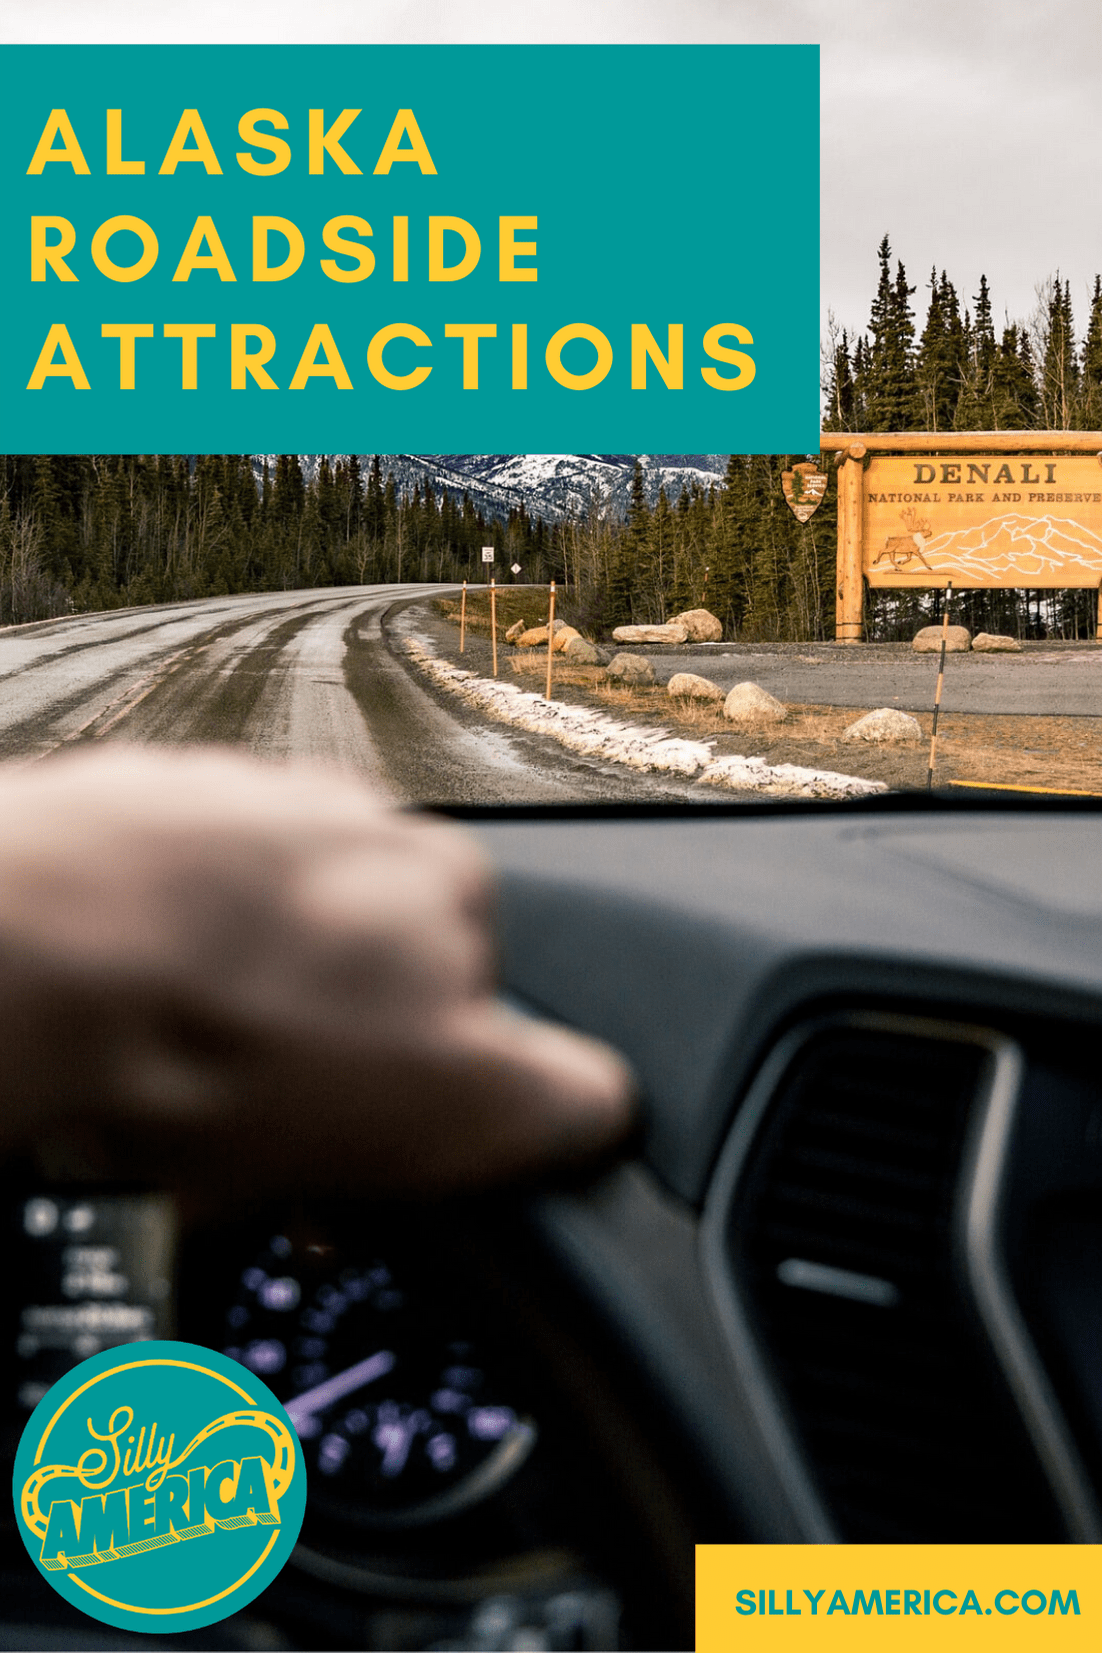 The best Alaska roadside attractions to visit on an Alaska road trip. Add these roadside oddities to your travel bucket list, itinerary, or route map! Fun road trip stops for kids or adults.  #AlaskaRoadTrip #AlaskaRoadTripMap #RoadTripMap #SummerRoadTrip #AlaskaSummer #AlaskaRoadTripItinerary #AlaskaItinerary #RoadTrip #RoadsideAttraction #RoadsideAttractions #AlaskaRoadsideAttractions #AlaskaRoadsideAttraction #AlaskaRoadTripStops